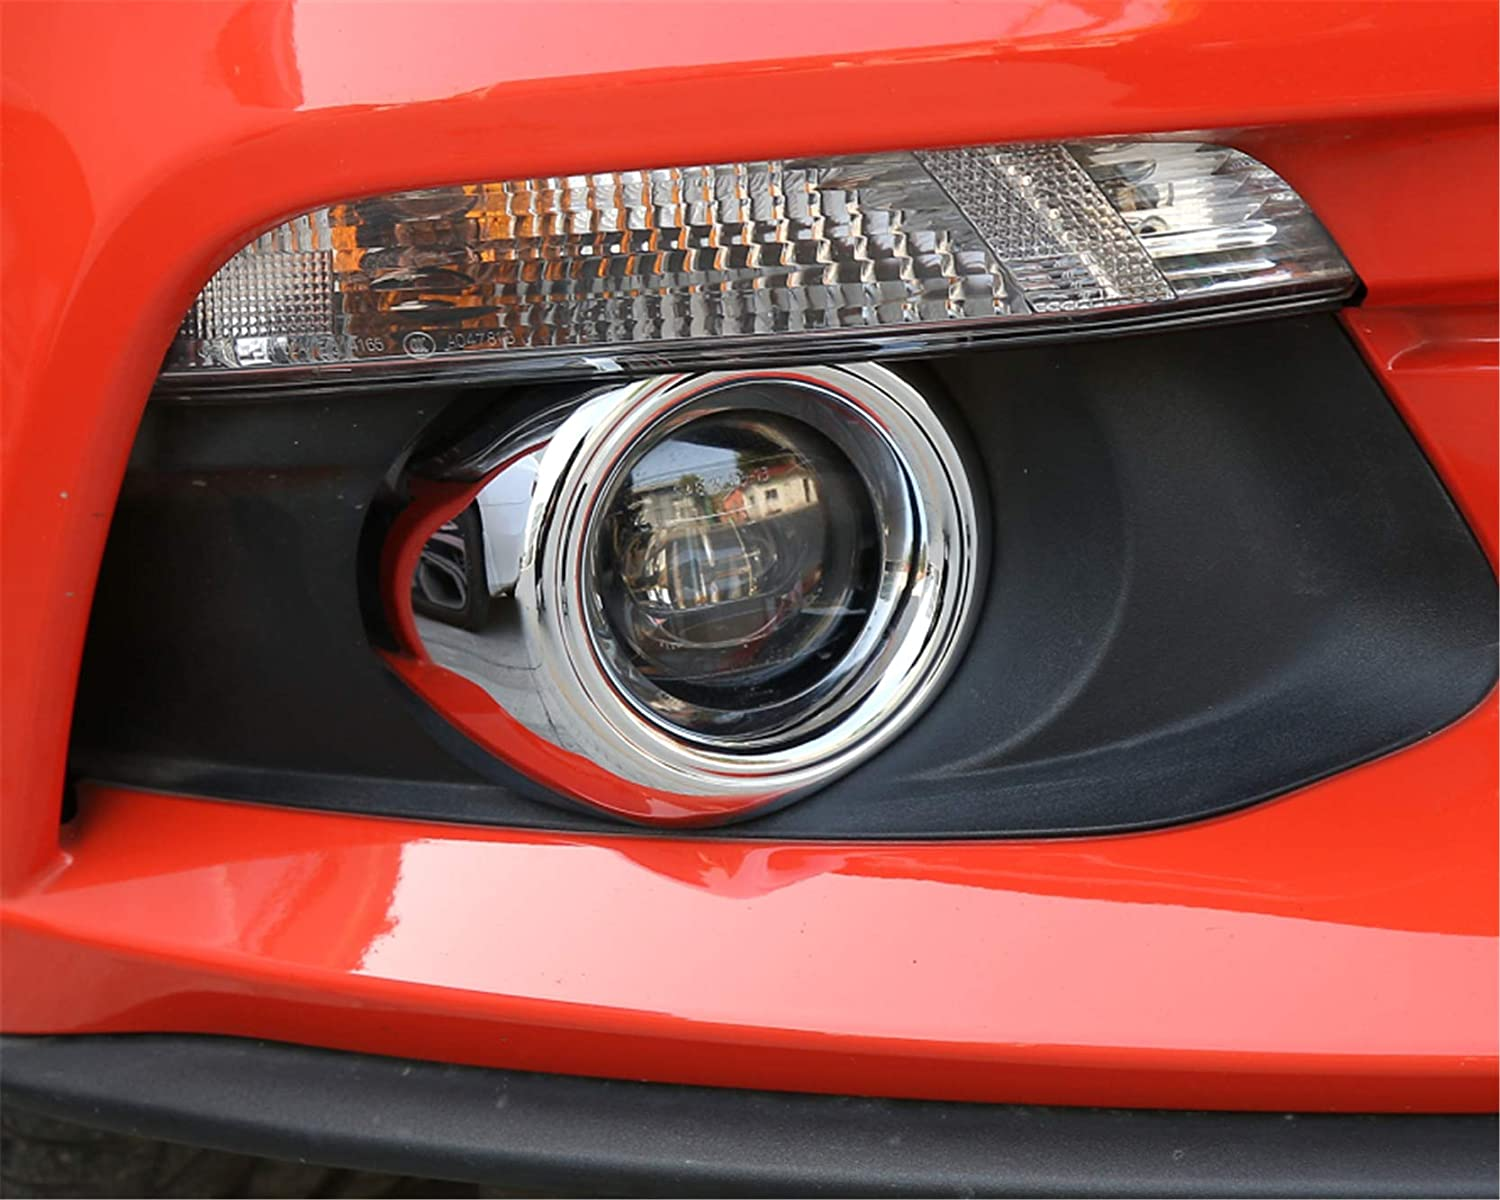 Front Fog Light Decoration Ring Frame Cover Trim Shell ABS Wear Resisting Scratch Protection Device for Ford Mustang 2015+ Carbon Fiber S5001